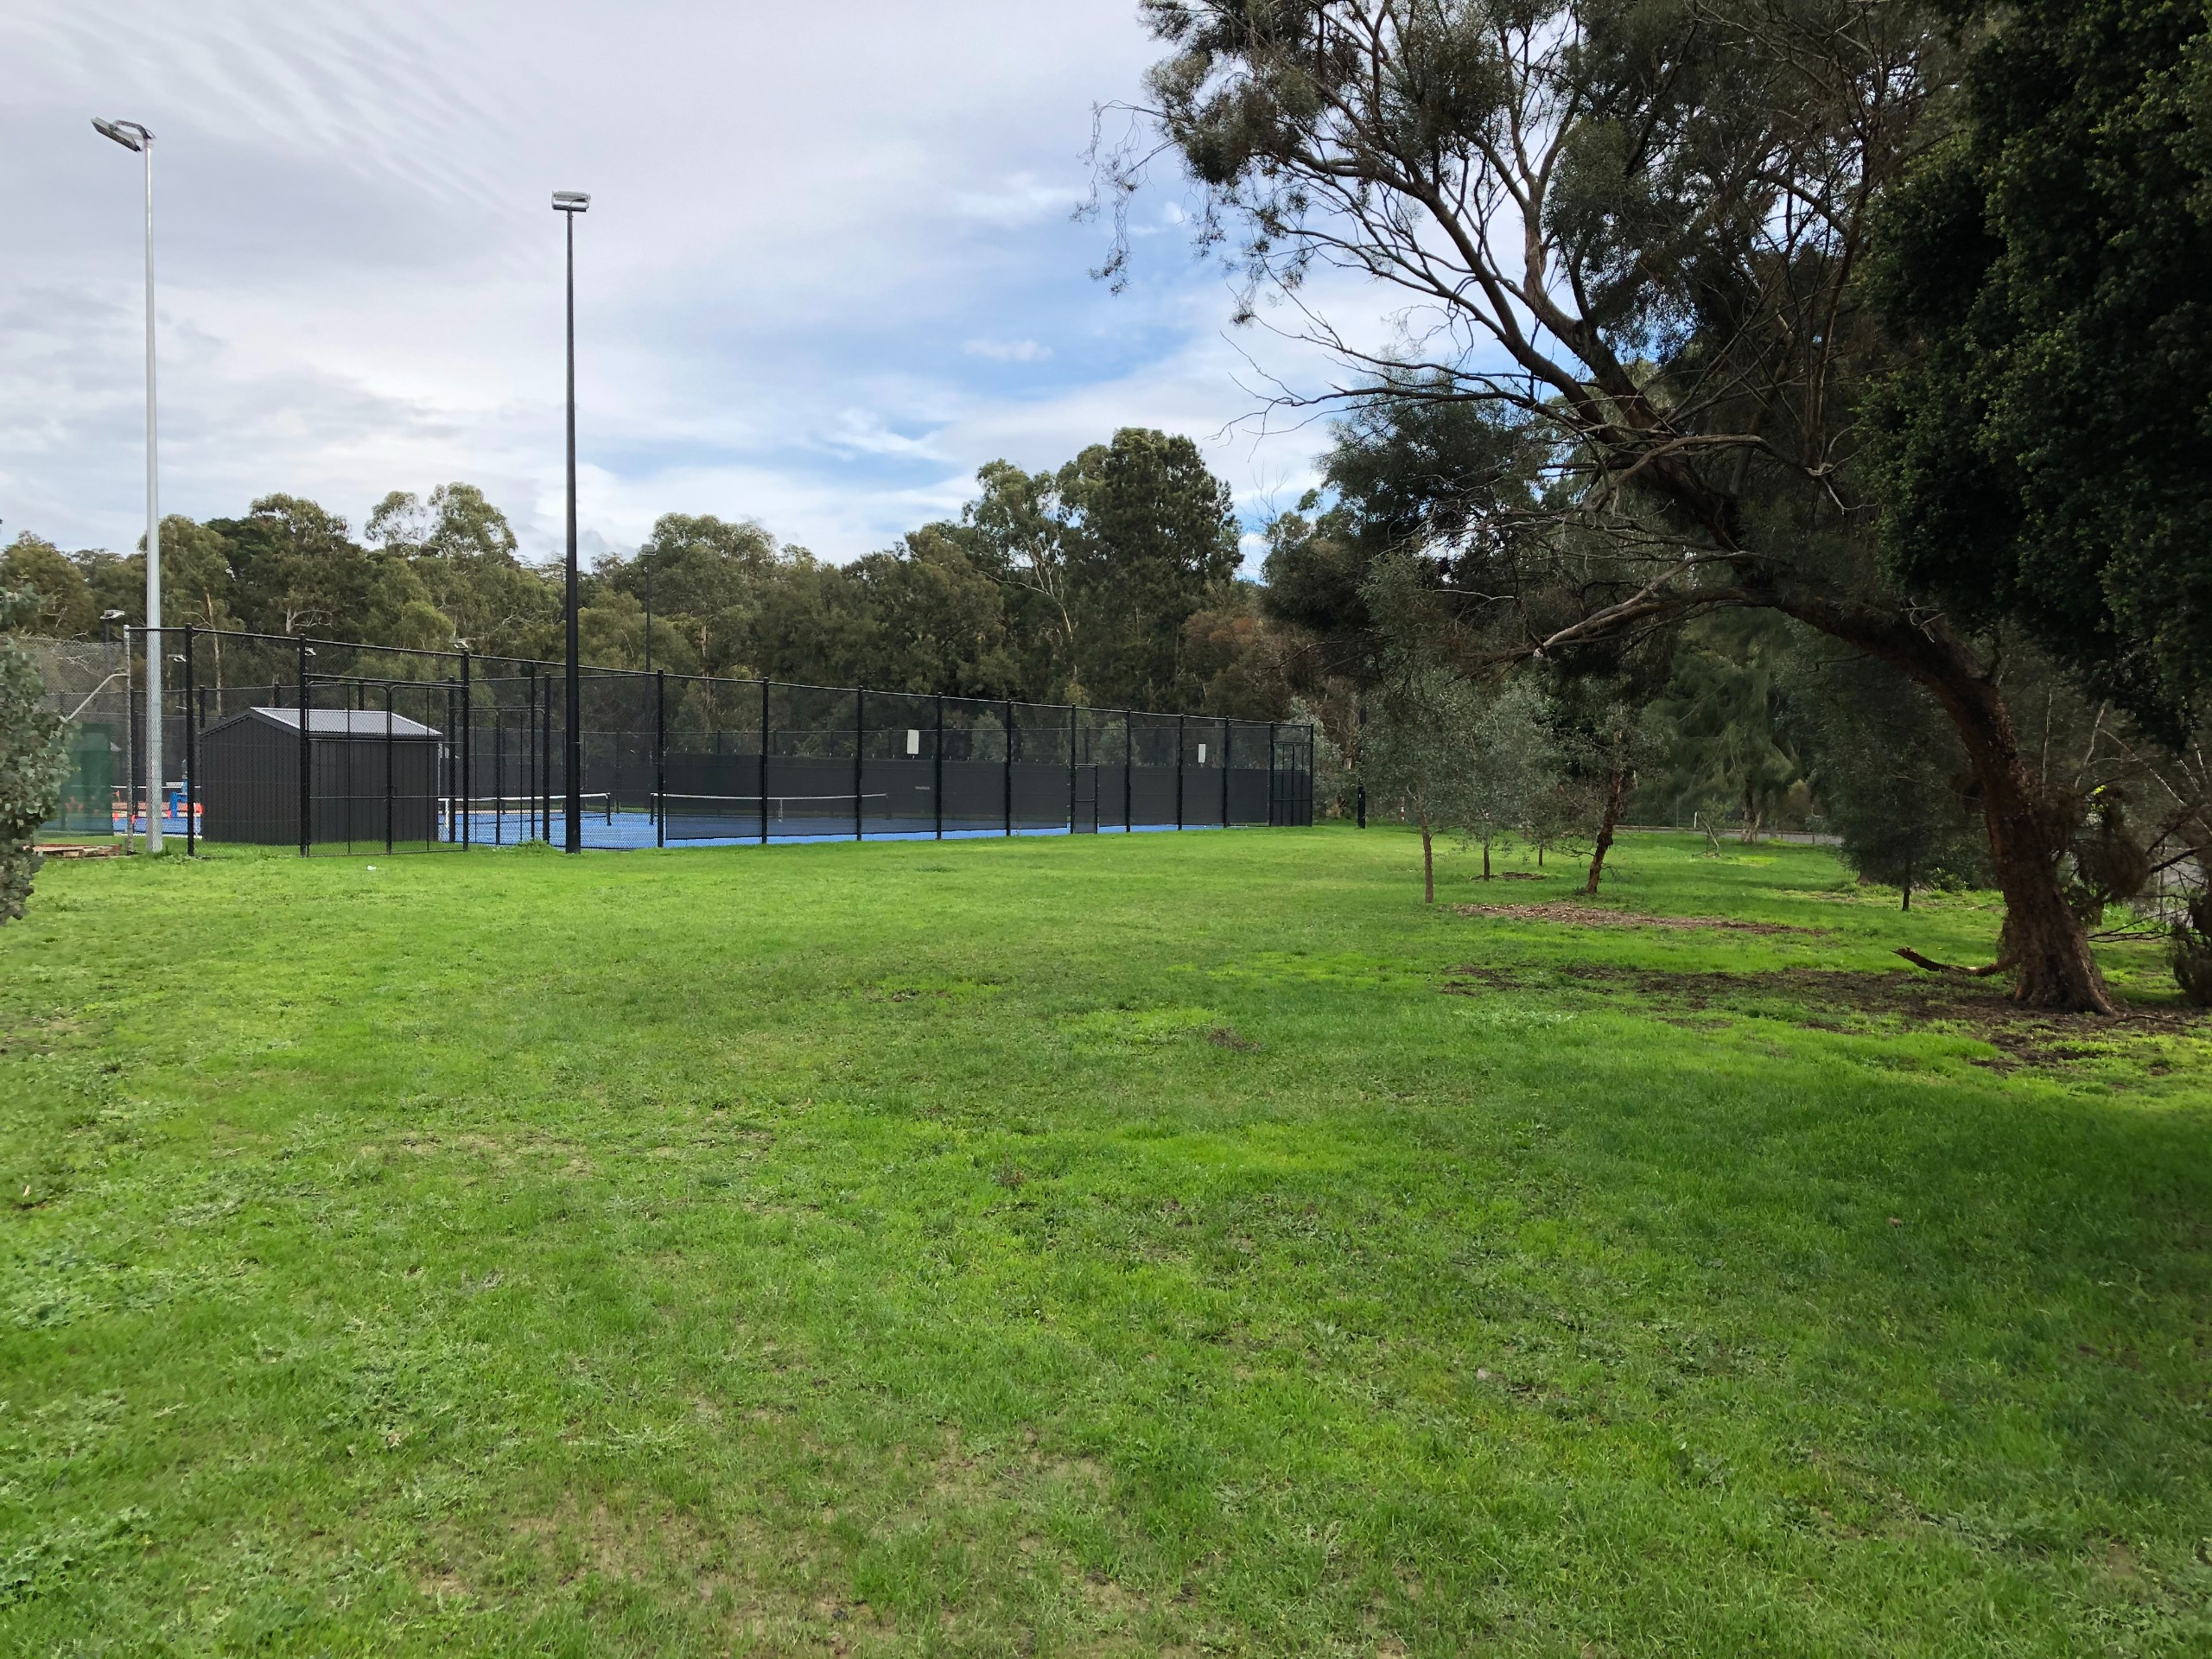 Image of the existing Andrew Park